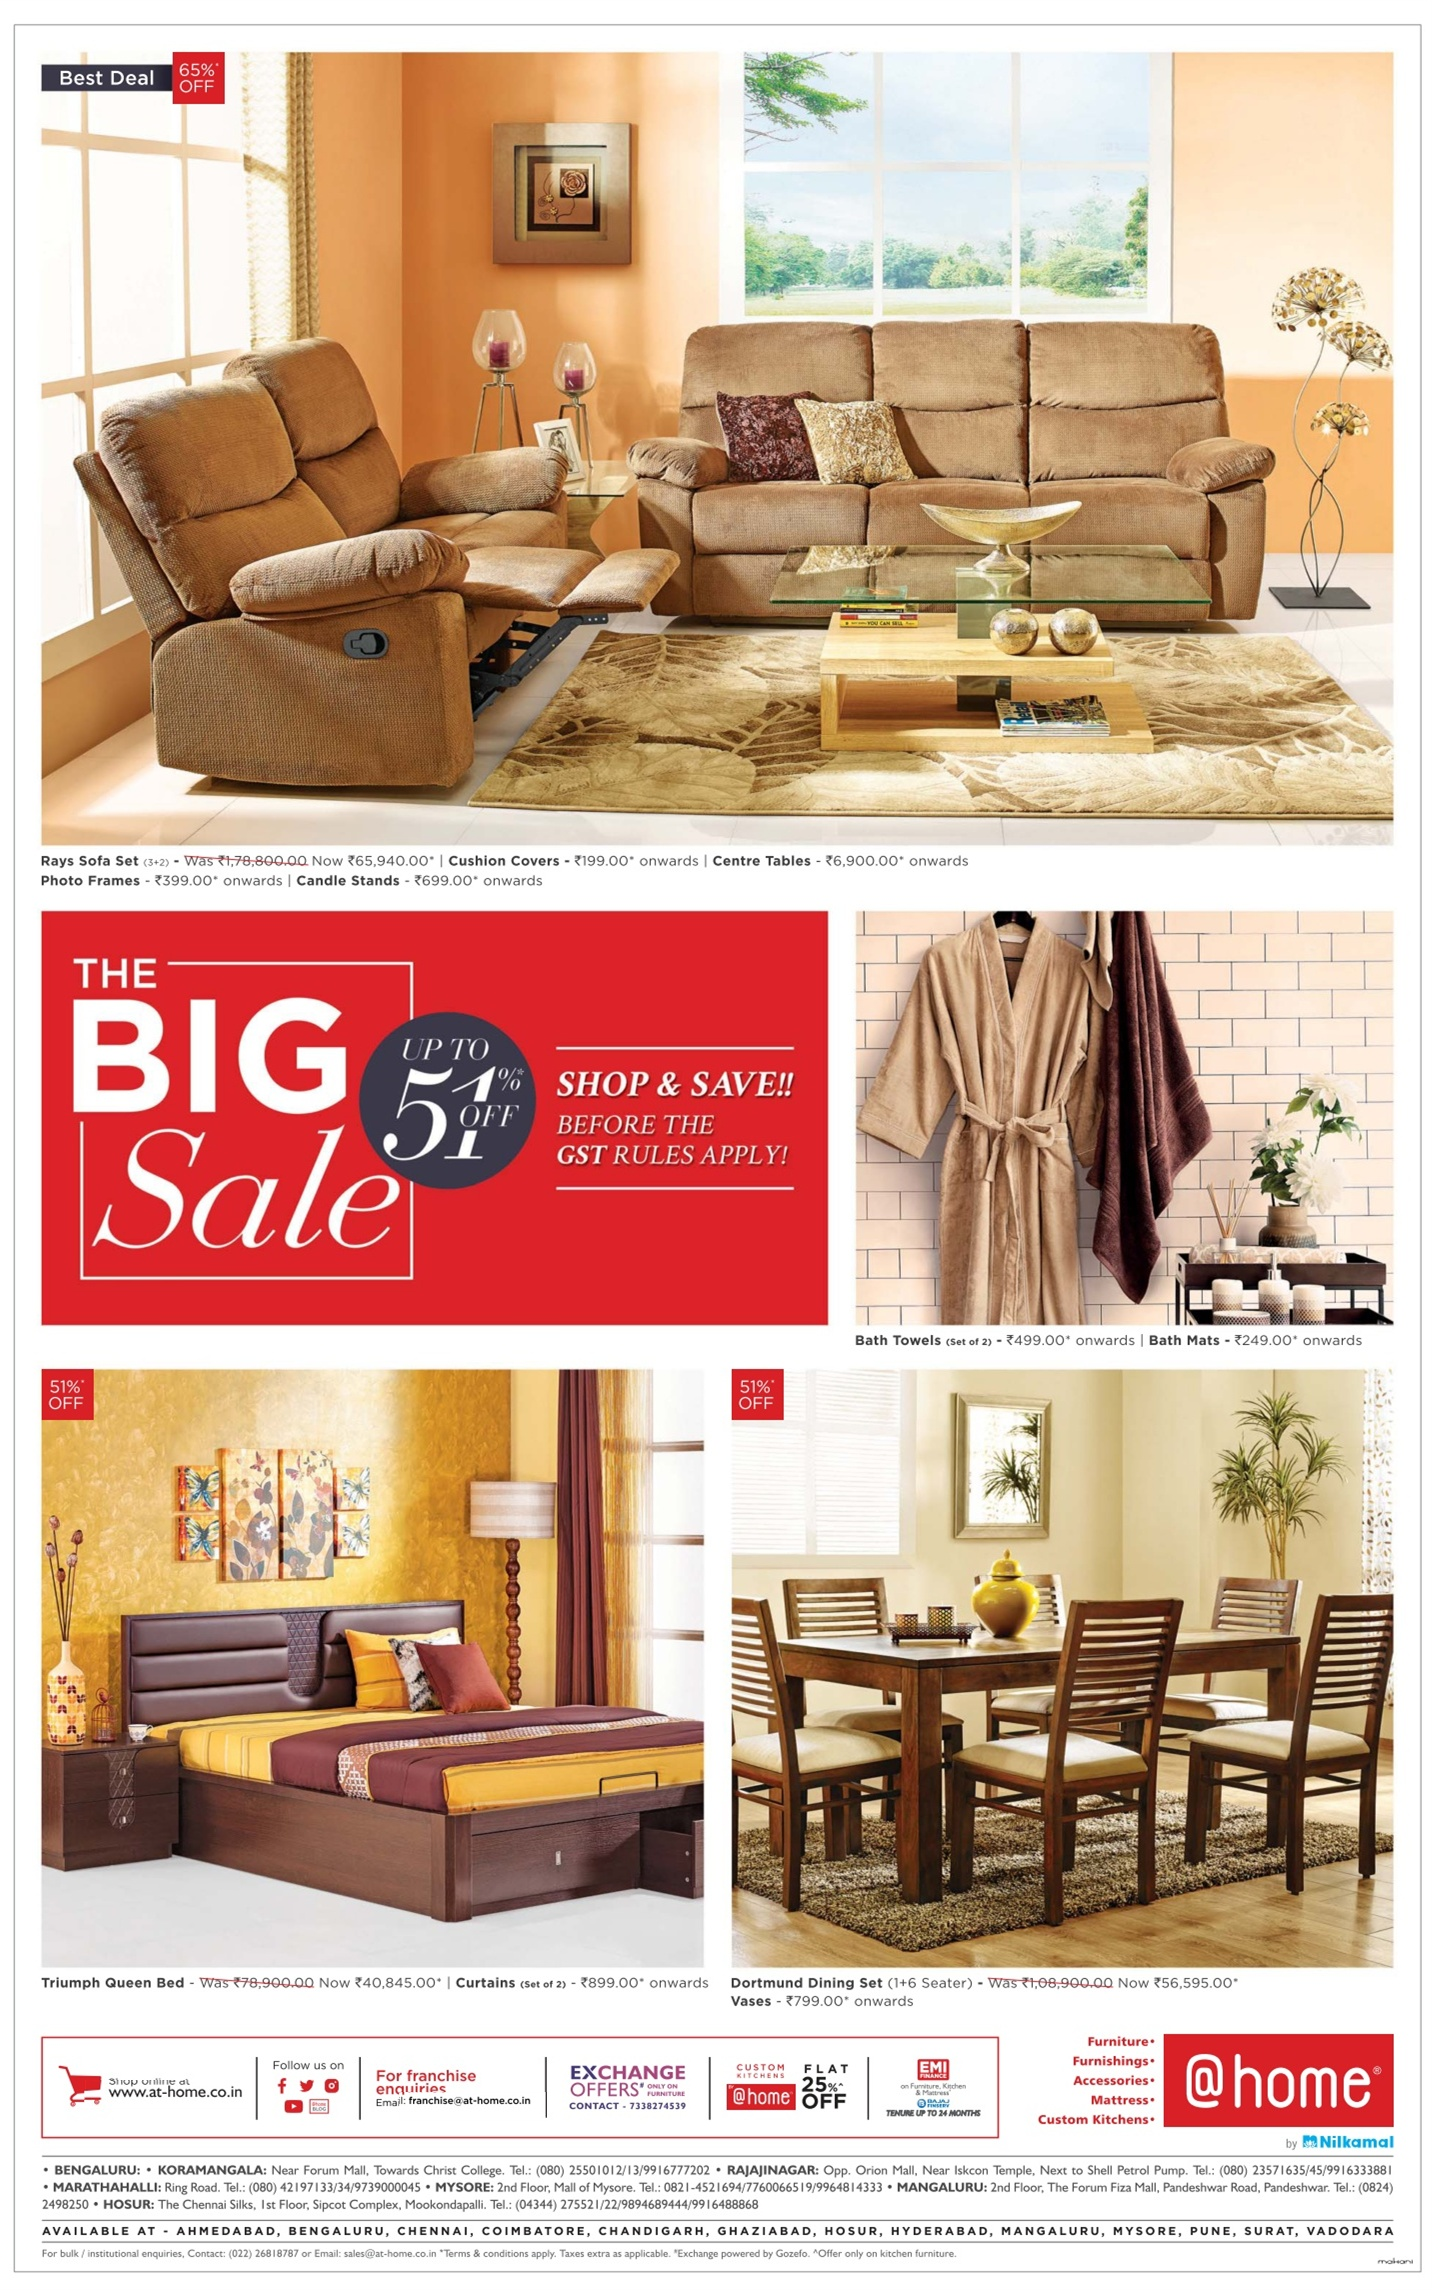 At Home Furniture Full Page Ad Advert Gallery